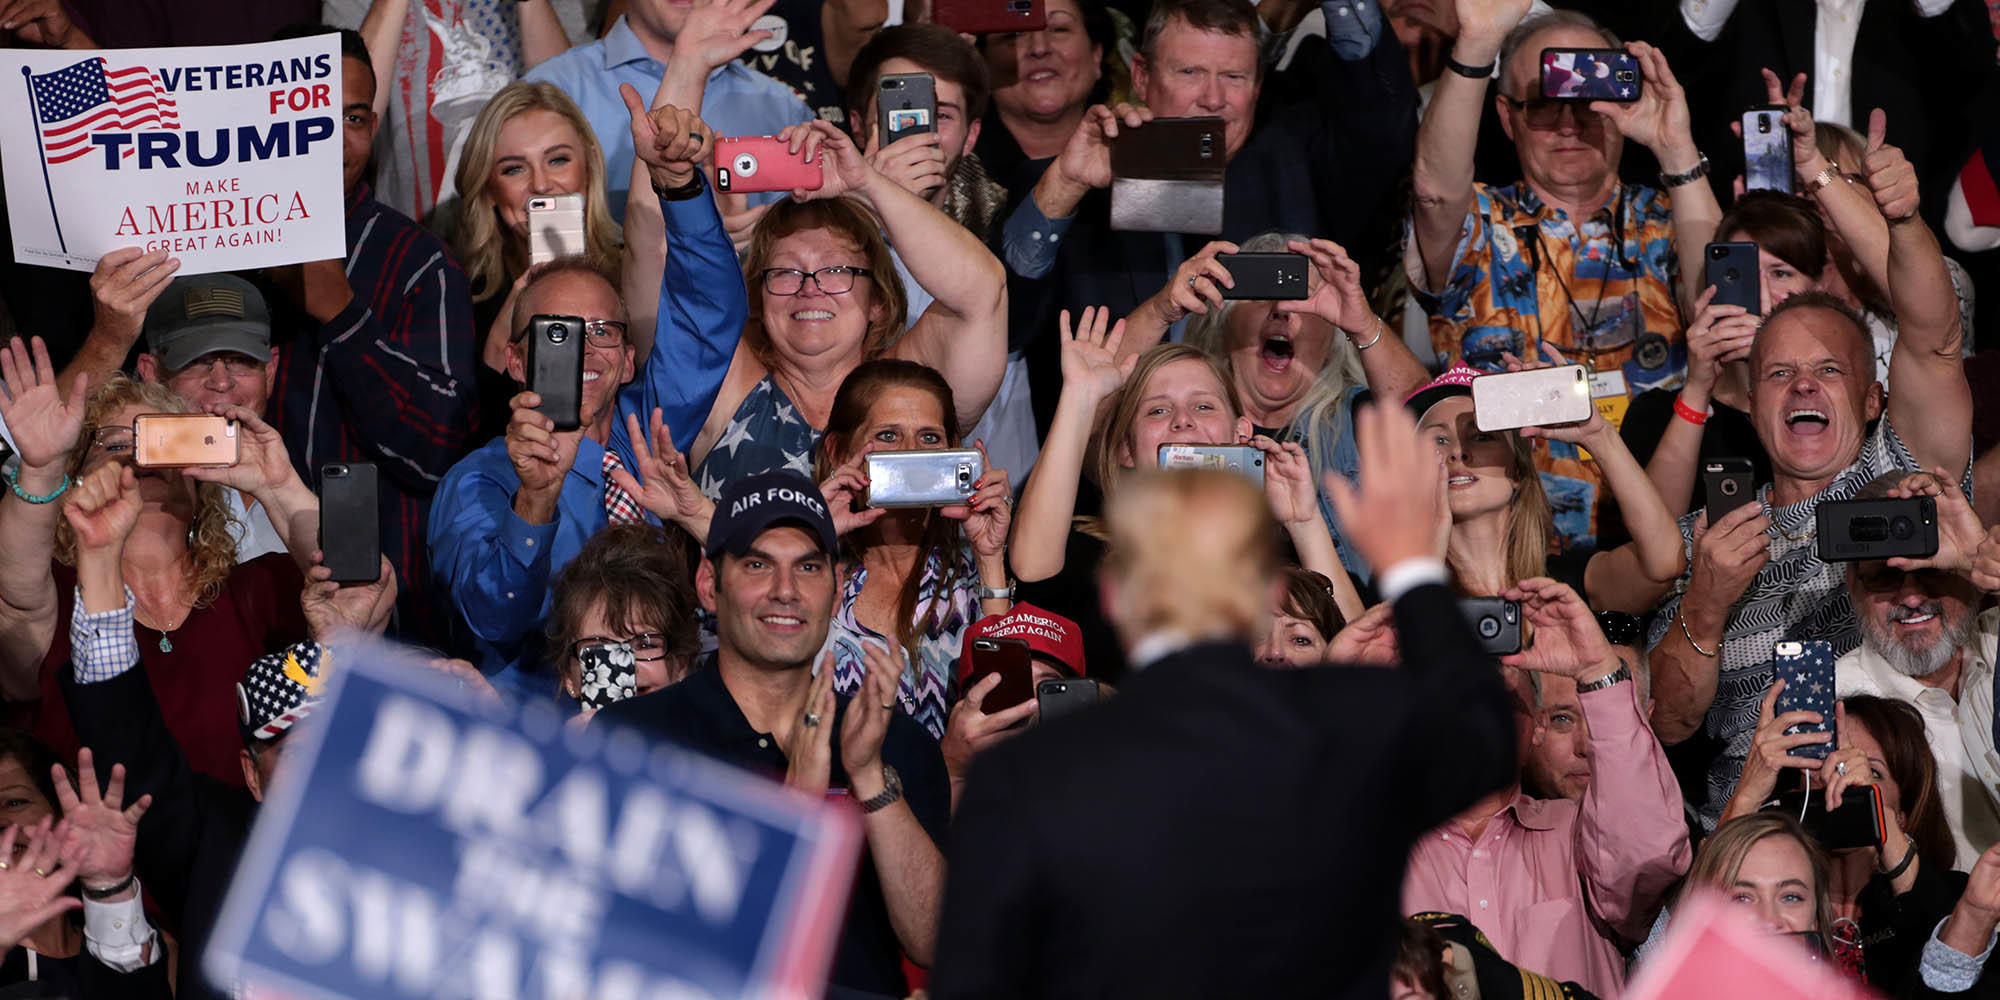 Donald Trump out of focus from behind waving to an in-focus crowd